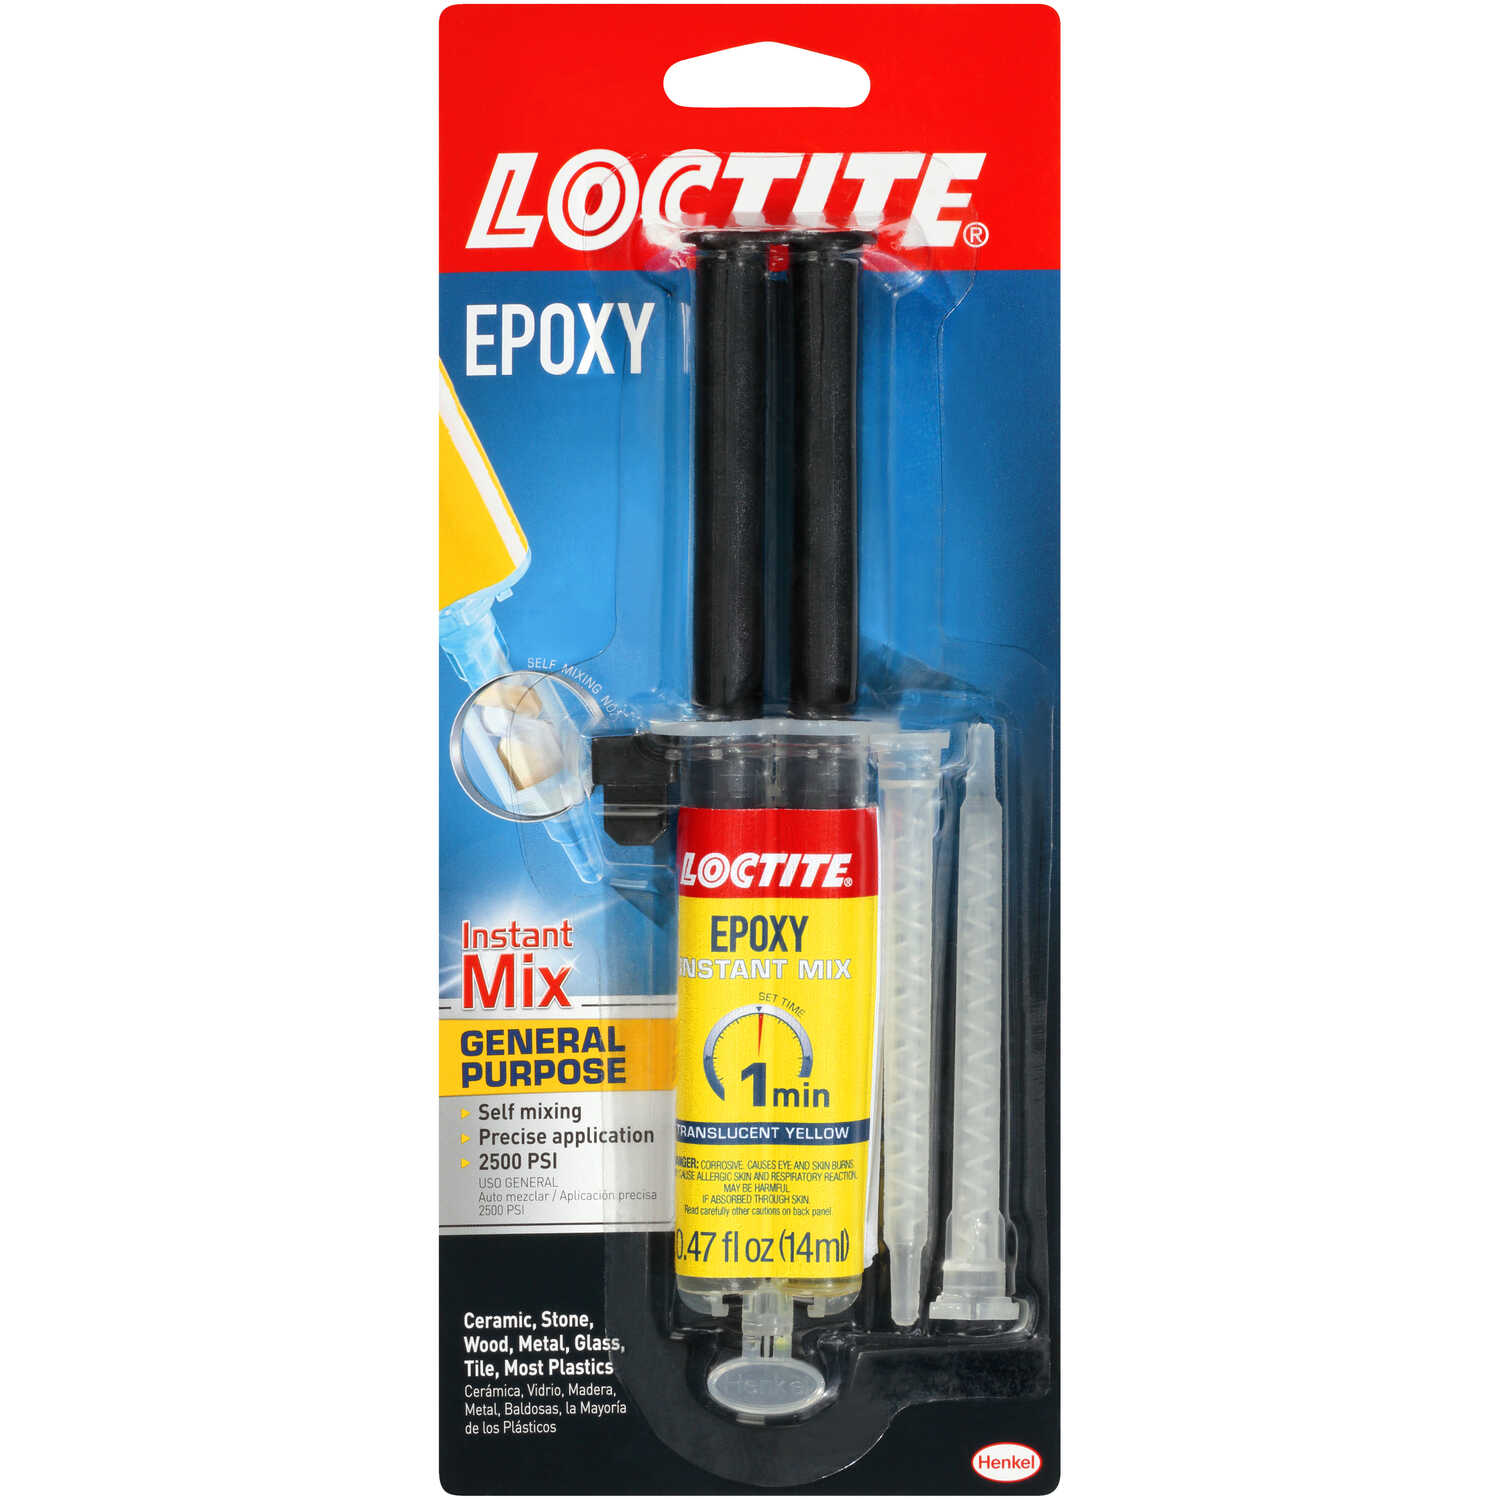 Loctite  Instant Mix  High Strength  Liquid  Epoxy  0.47 oz.